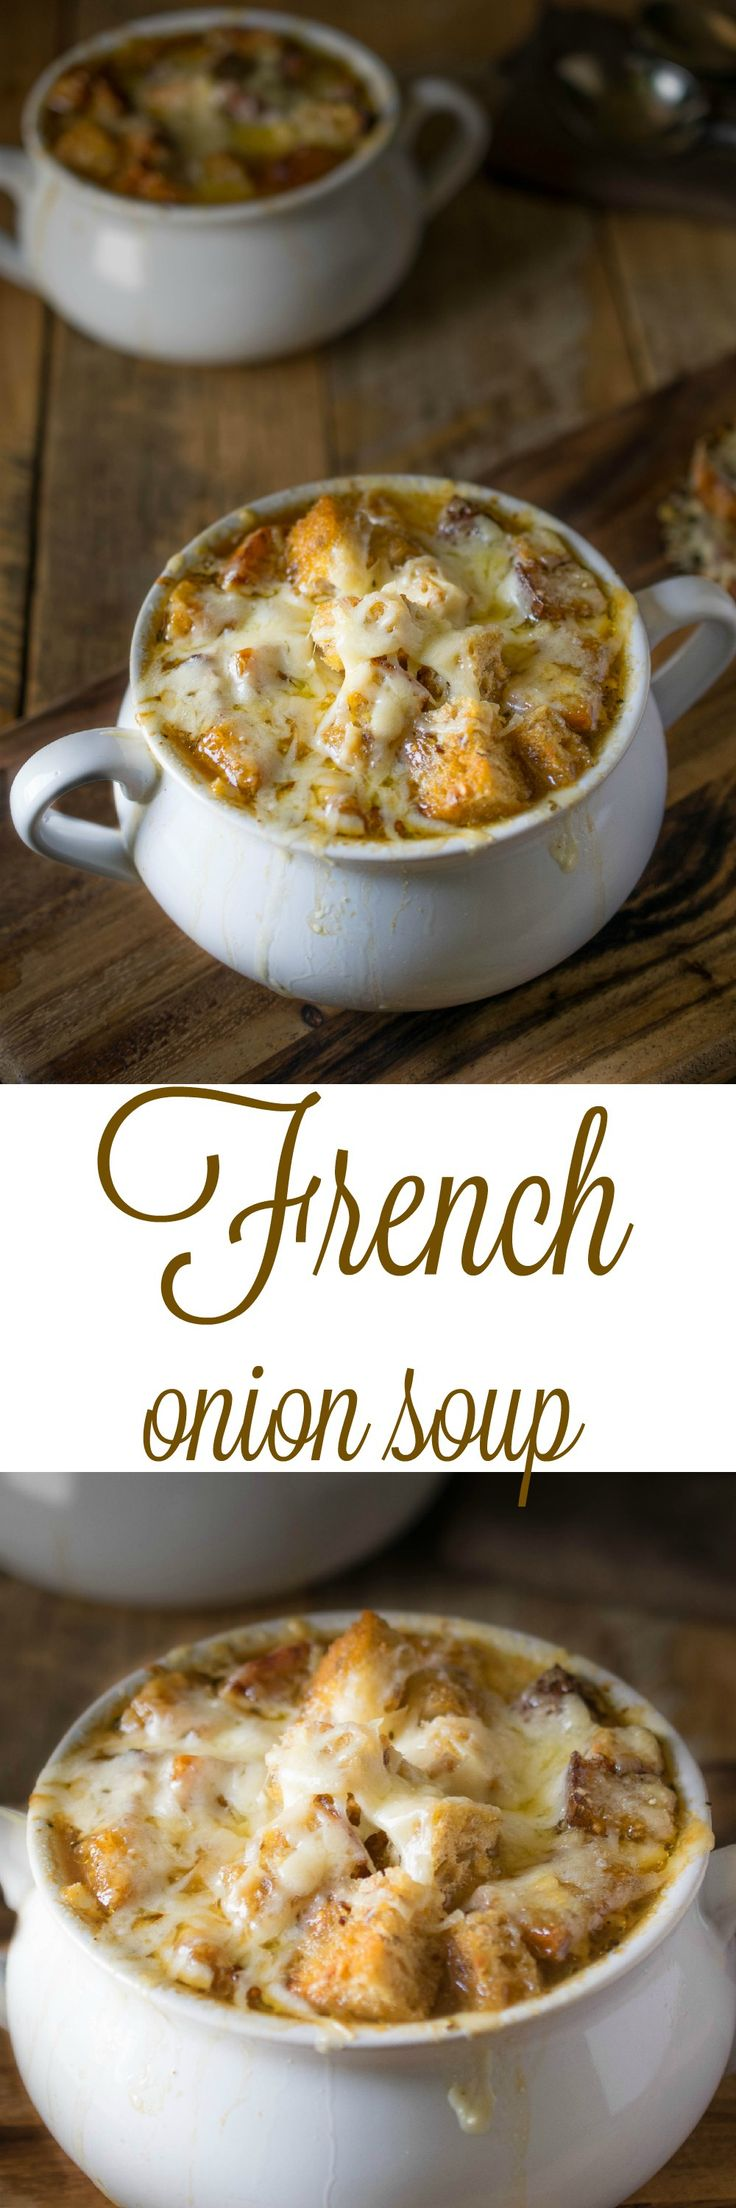 French onion soup is a rich, sweet, flavorful onion laden soup with floating croutons and lots of…